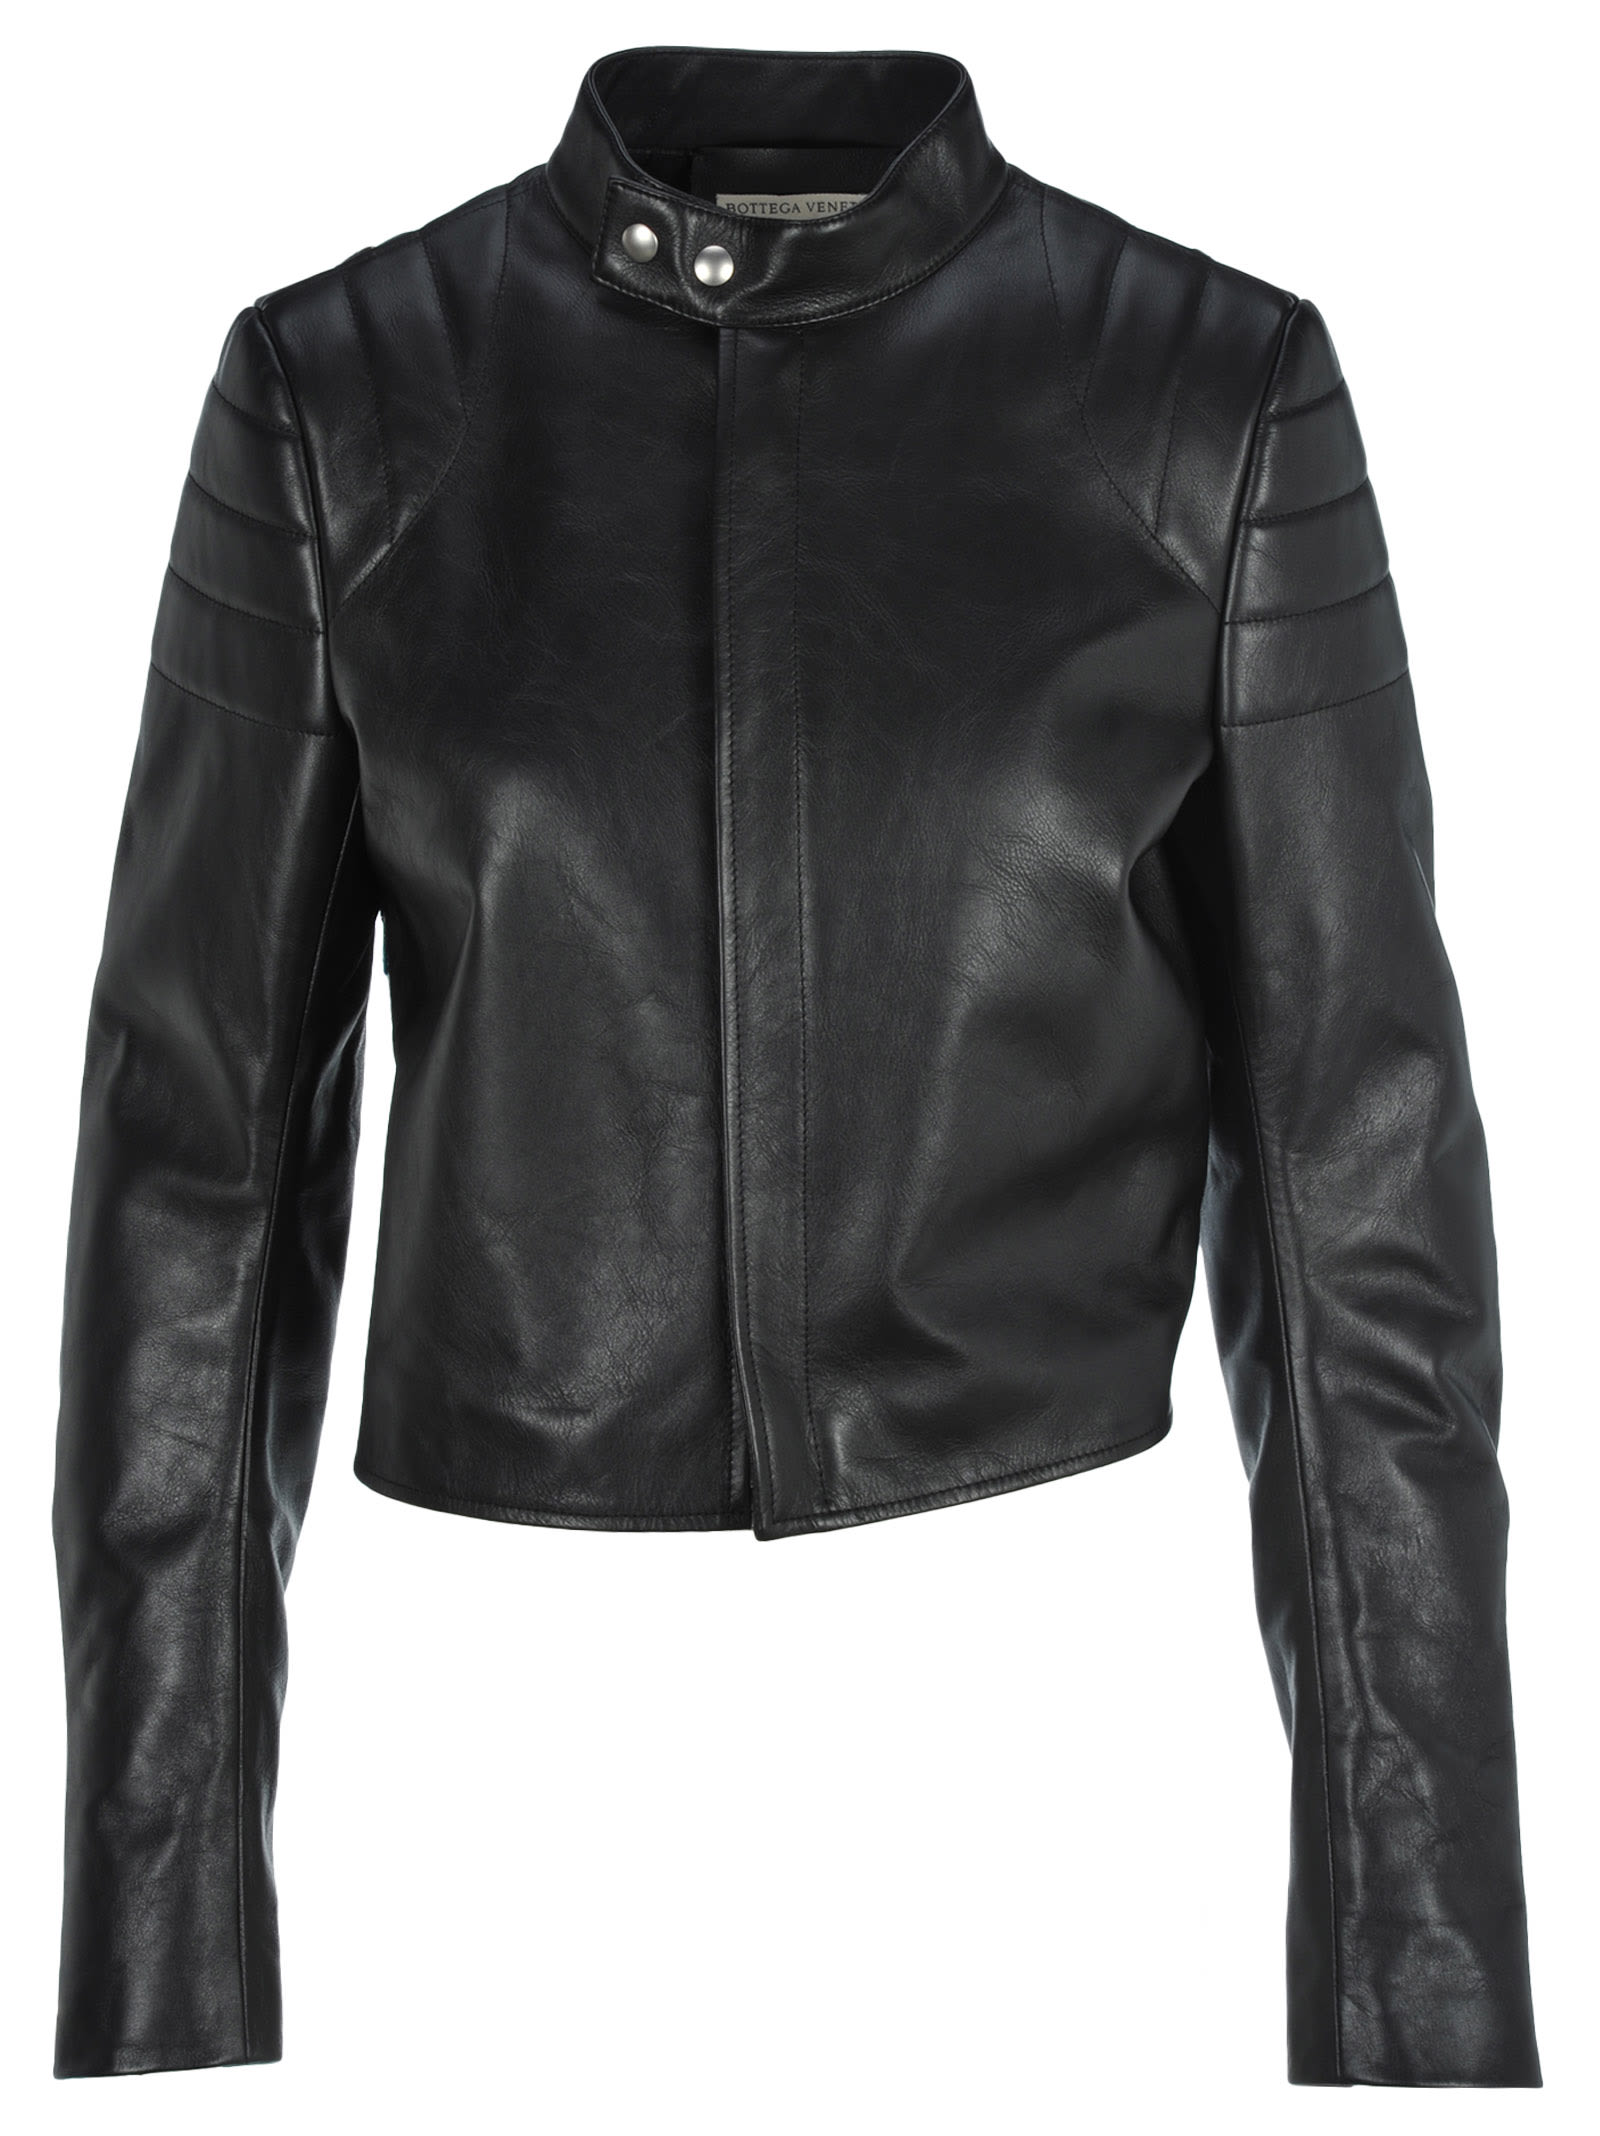 Bottega Veneta Biker Leather Jacket